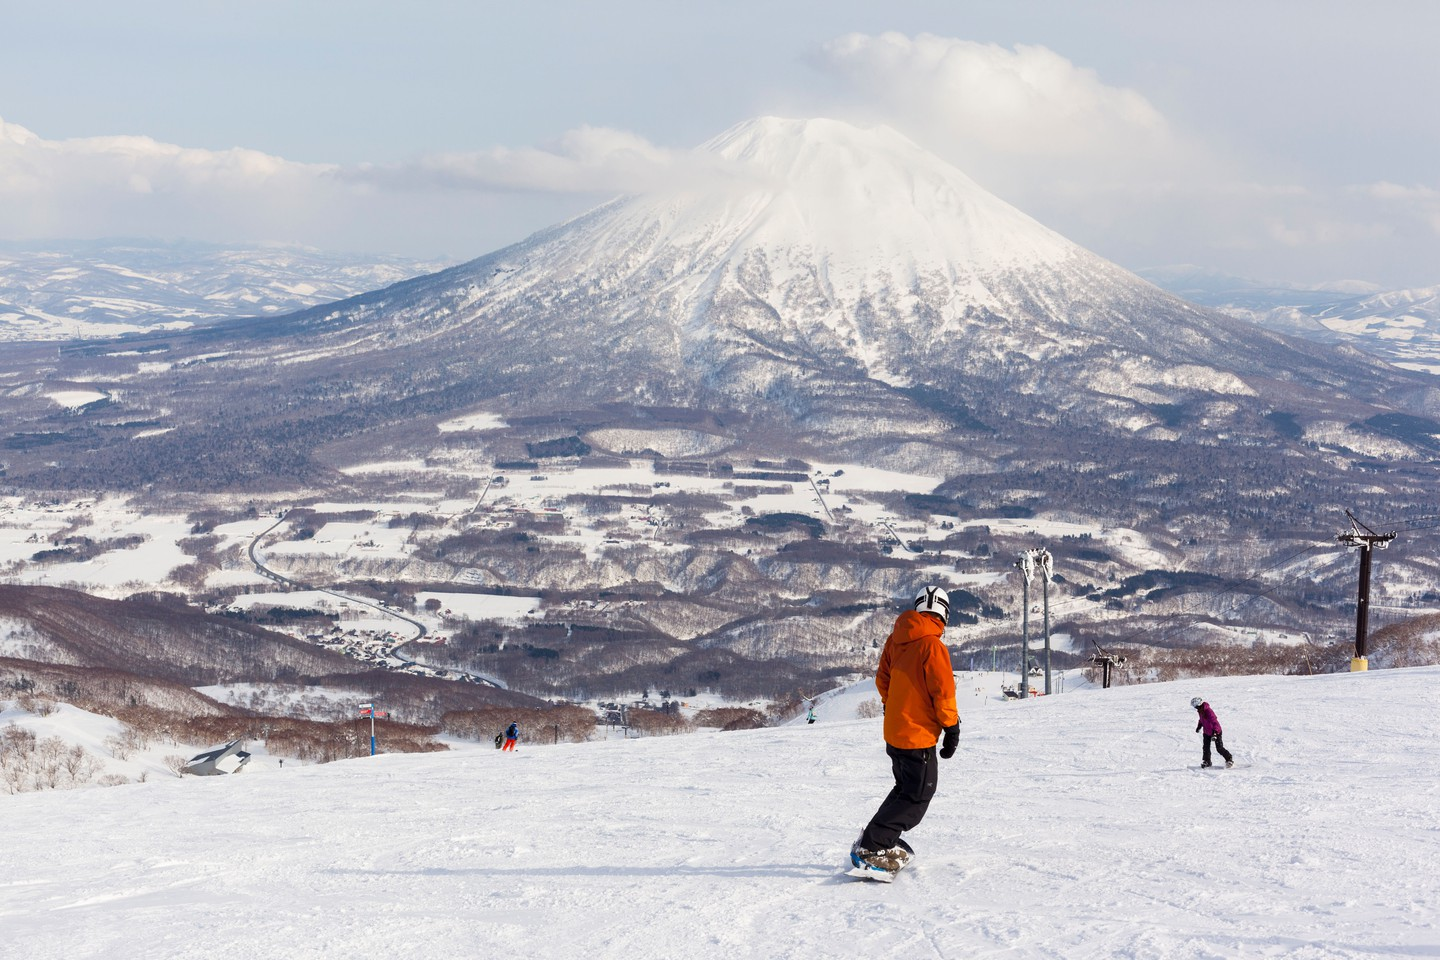 Snowboarders on the ski slopes of Niseko